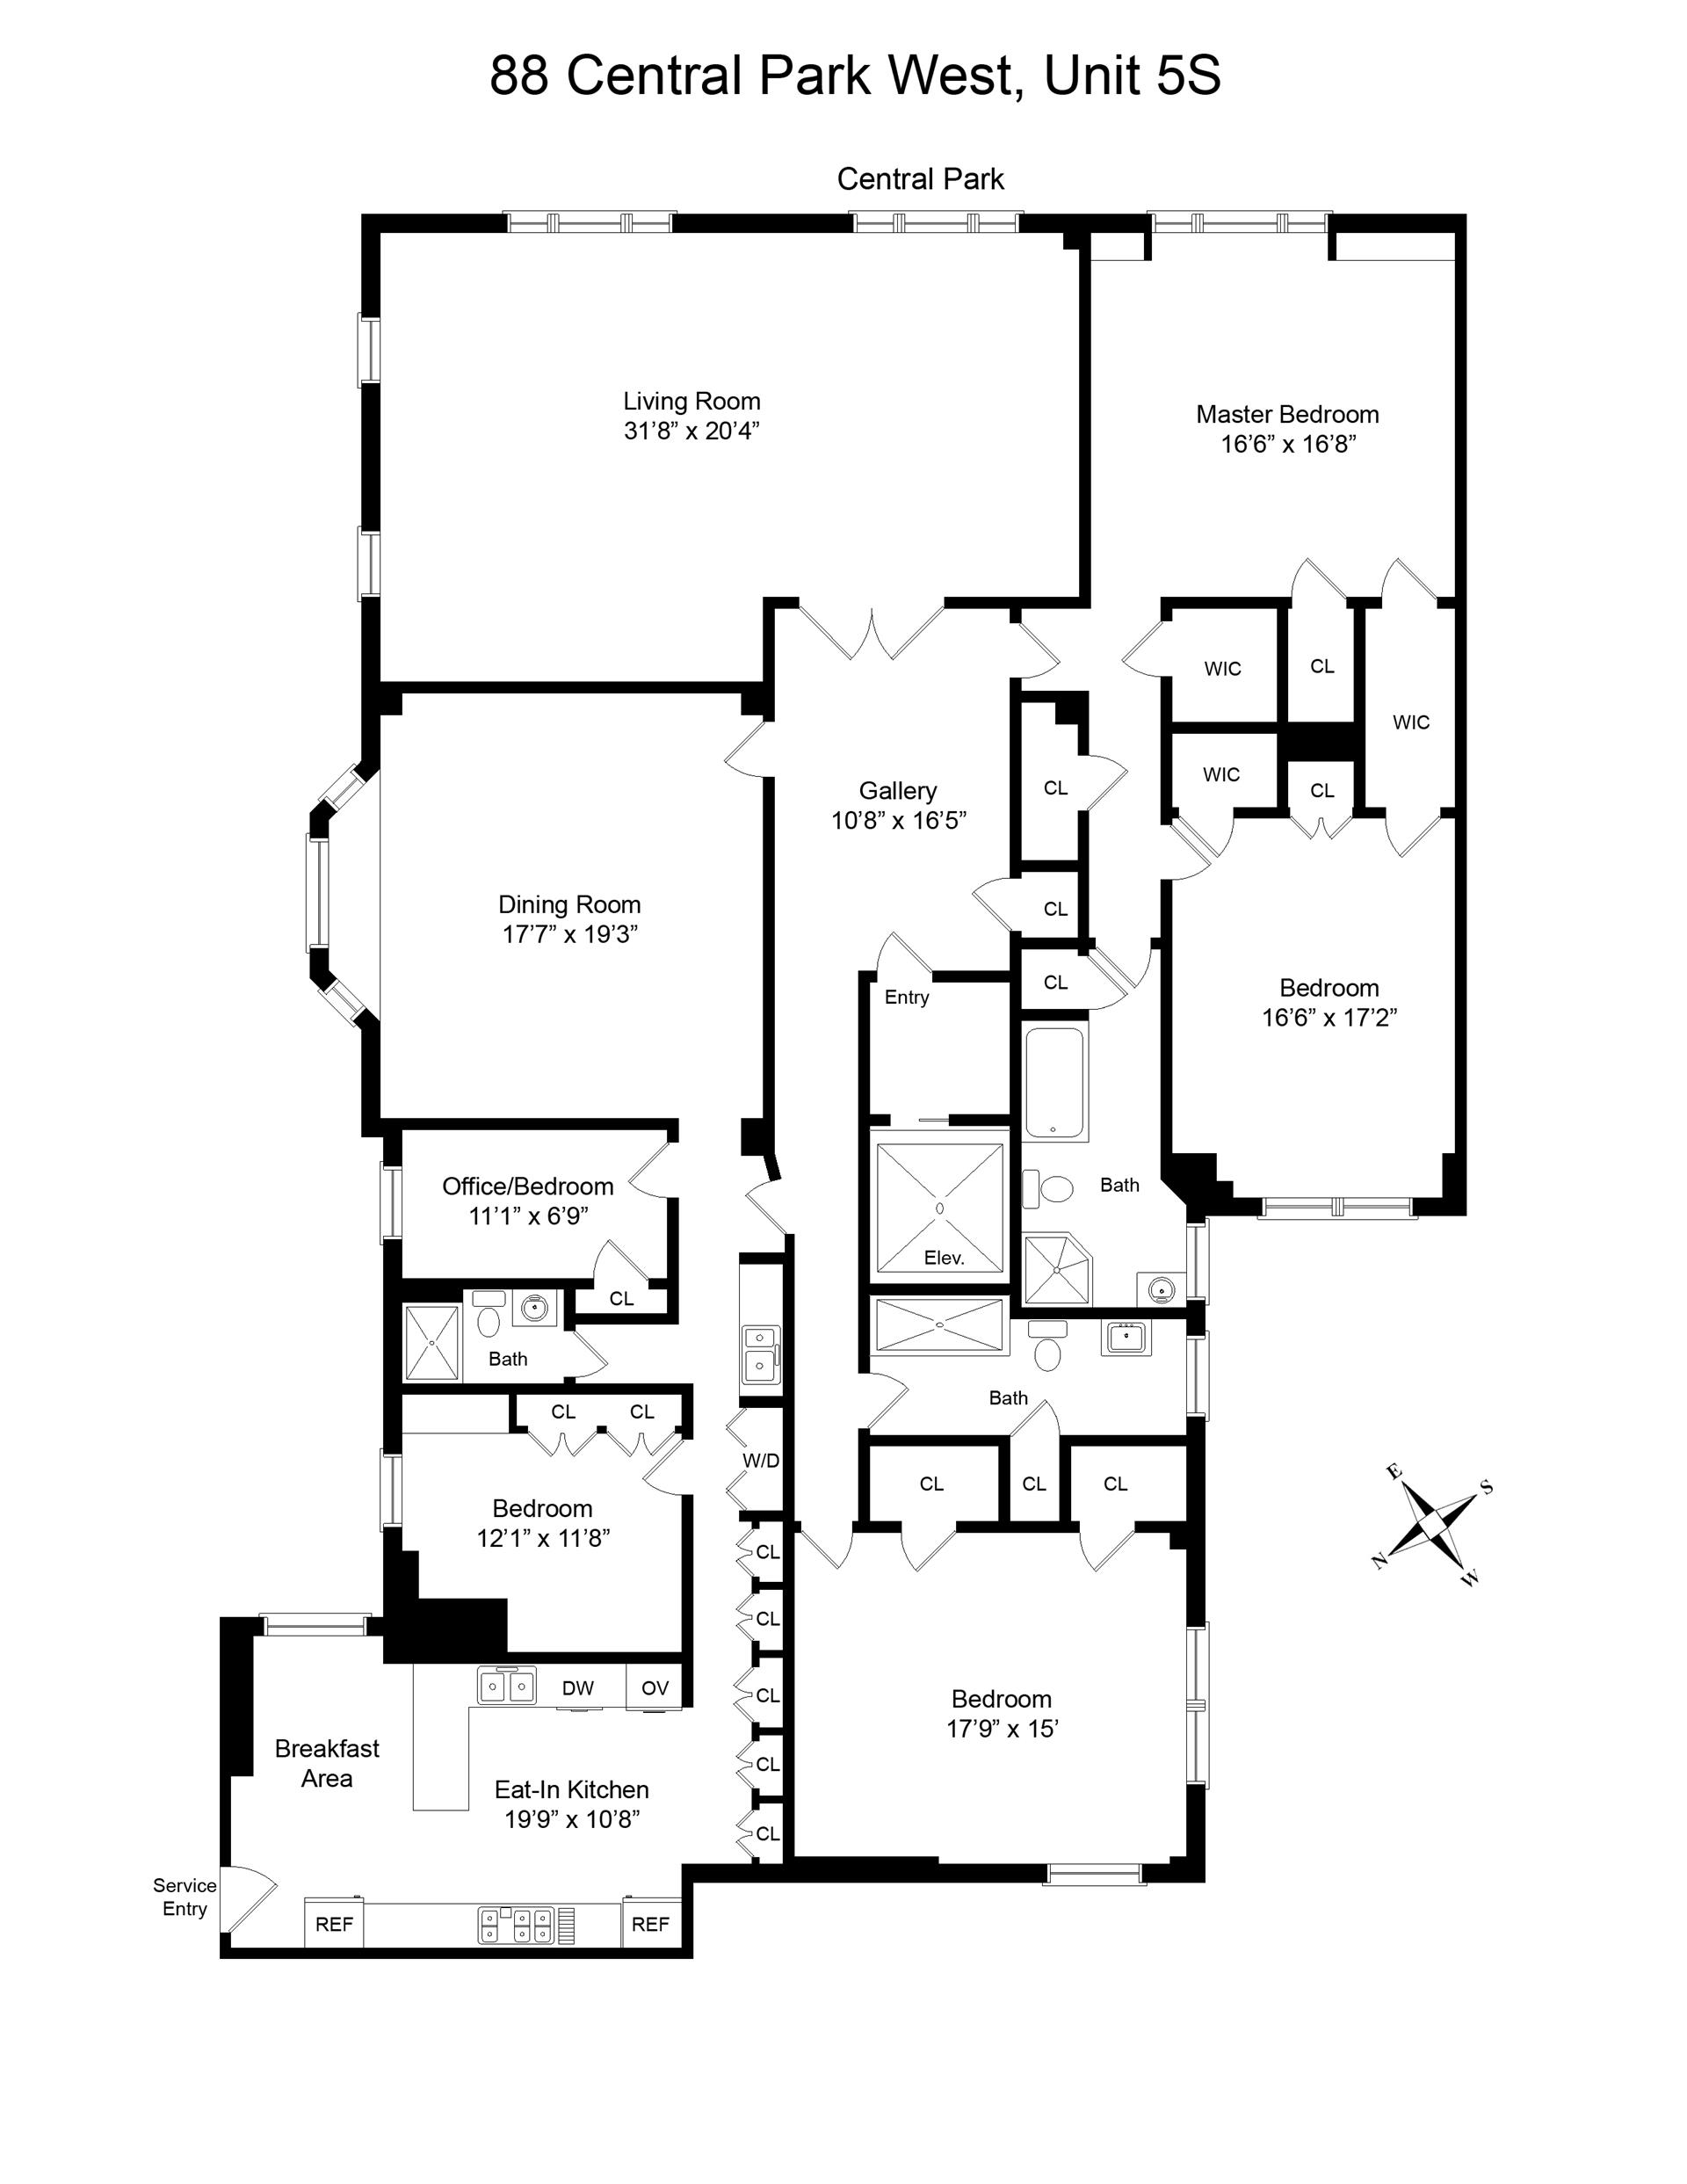 Floor plan of The Brentmore, 88 Central Park West, 5S - Upper West Side, New York